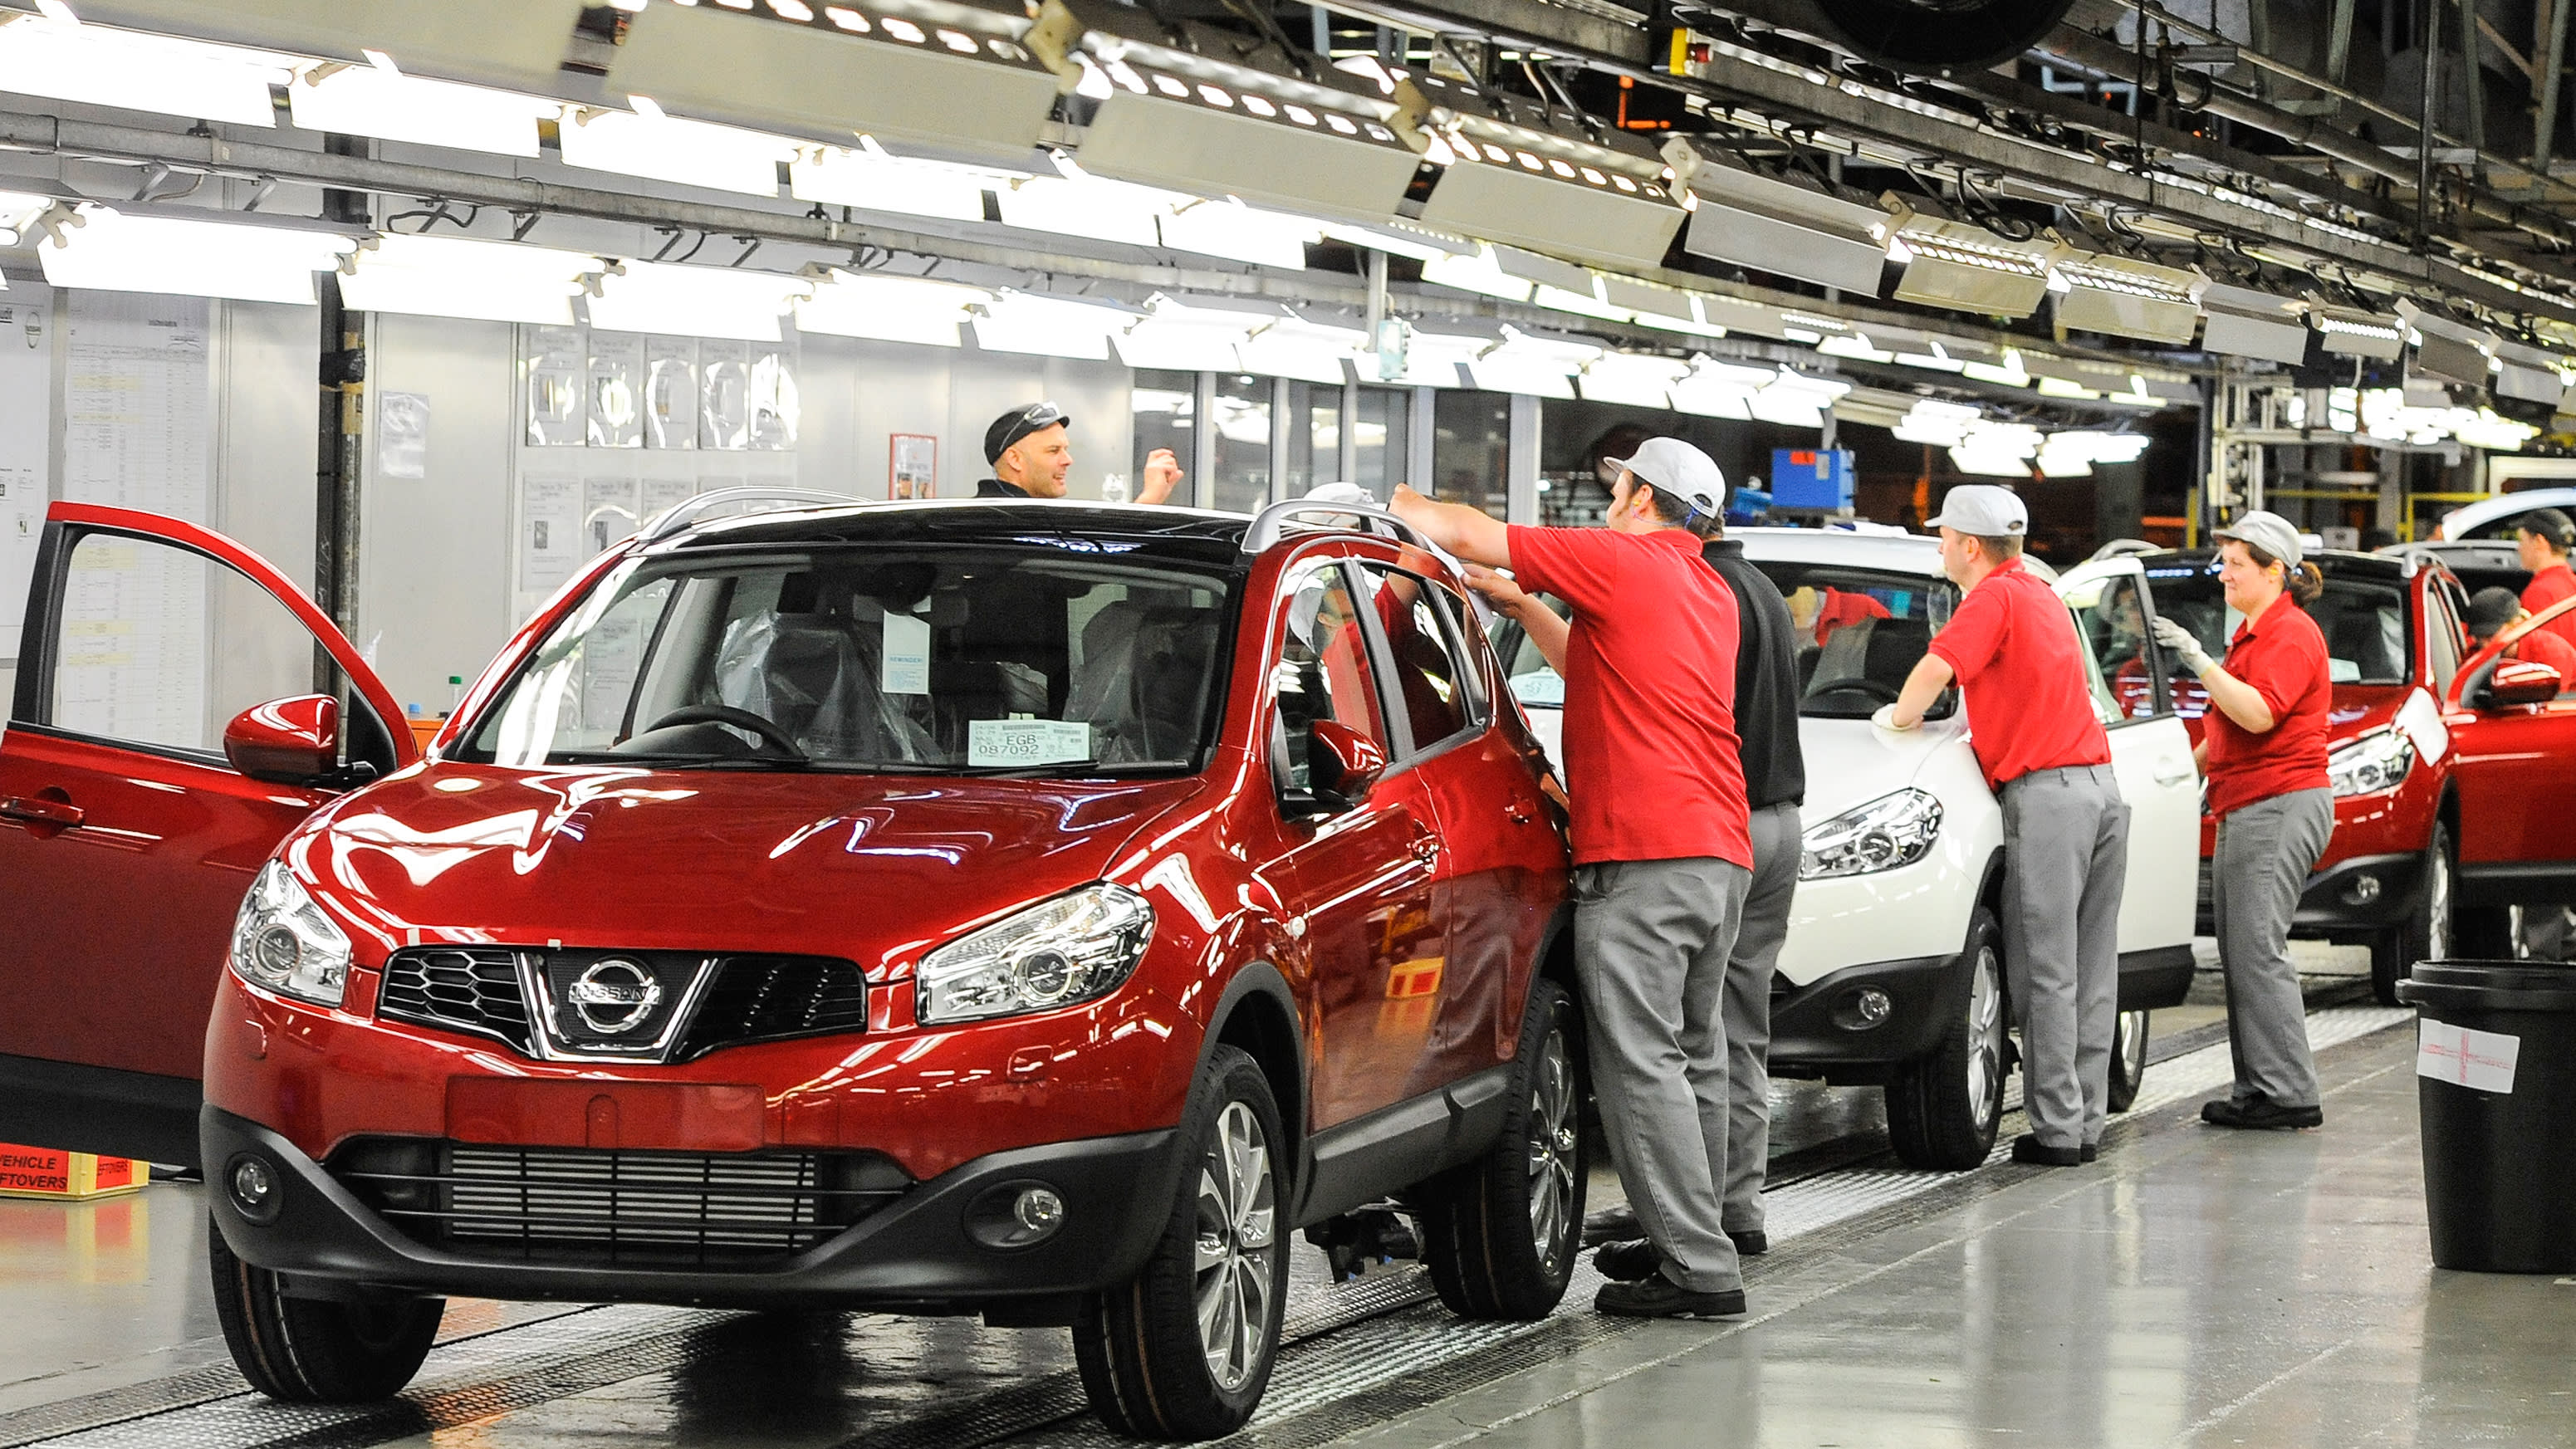 Nissan to post 90% profit drop and cut thousands more jobs